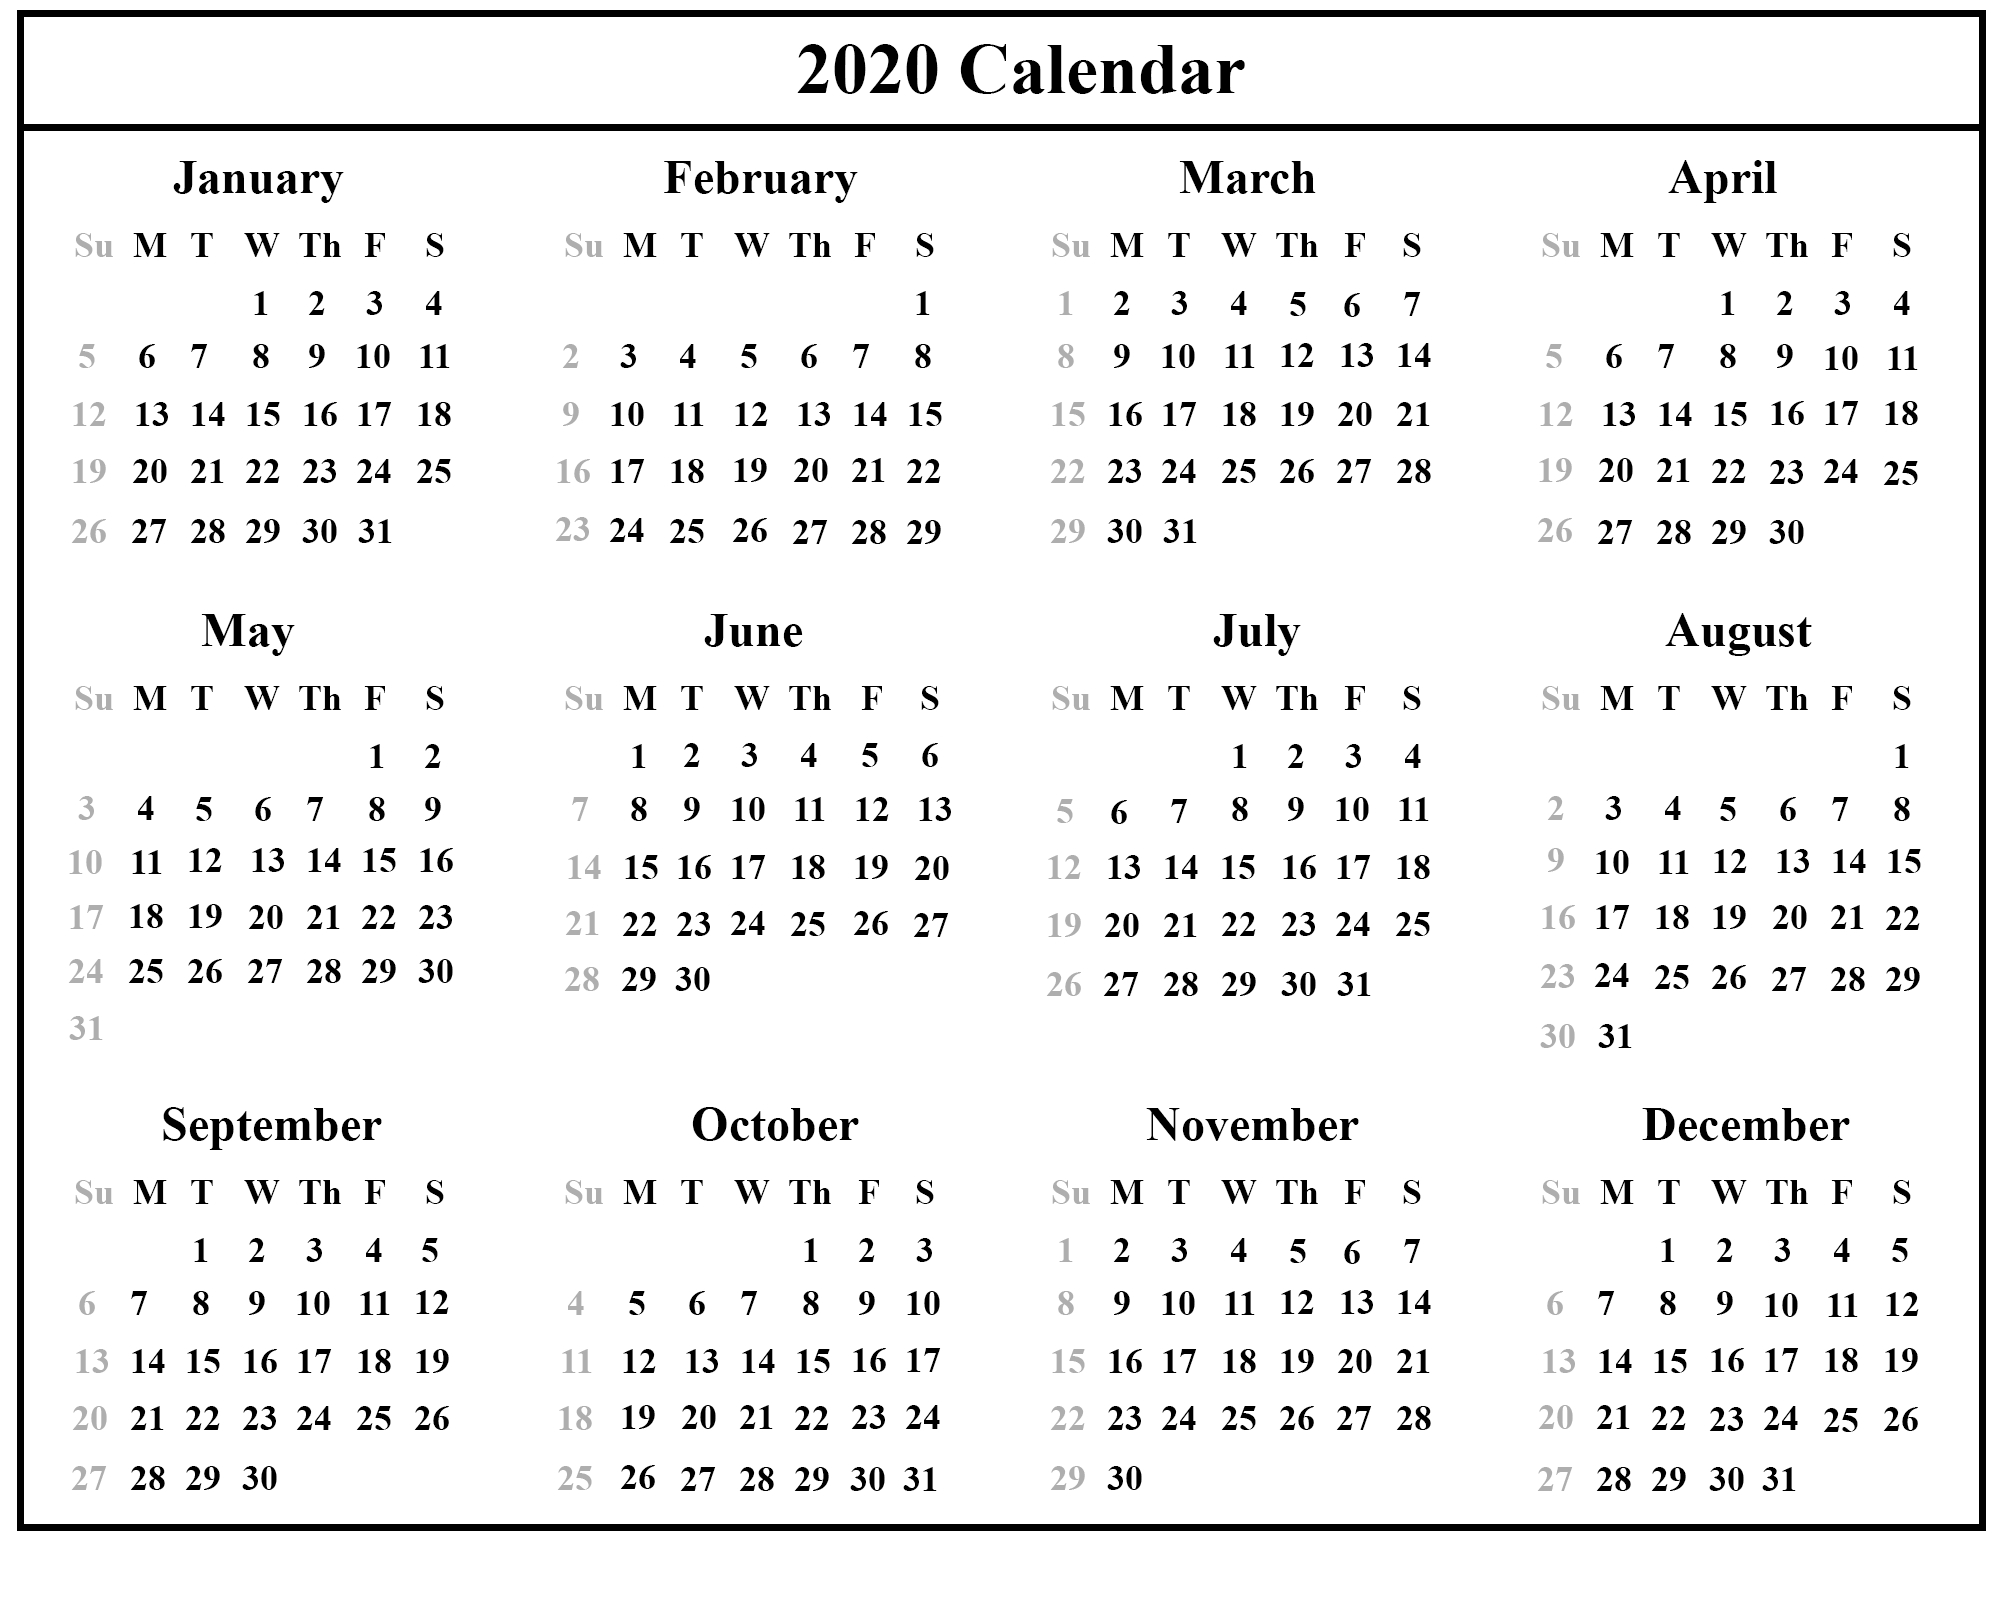 Editable 2020 Calendar Printable Template Blank With Notes-6 Month Calendar 2020 July Dec Template